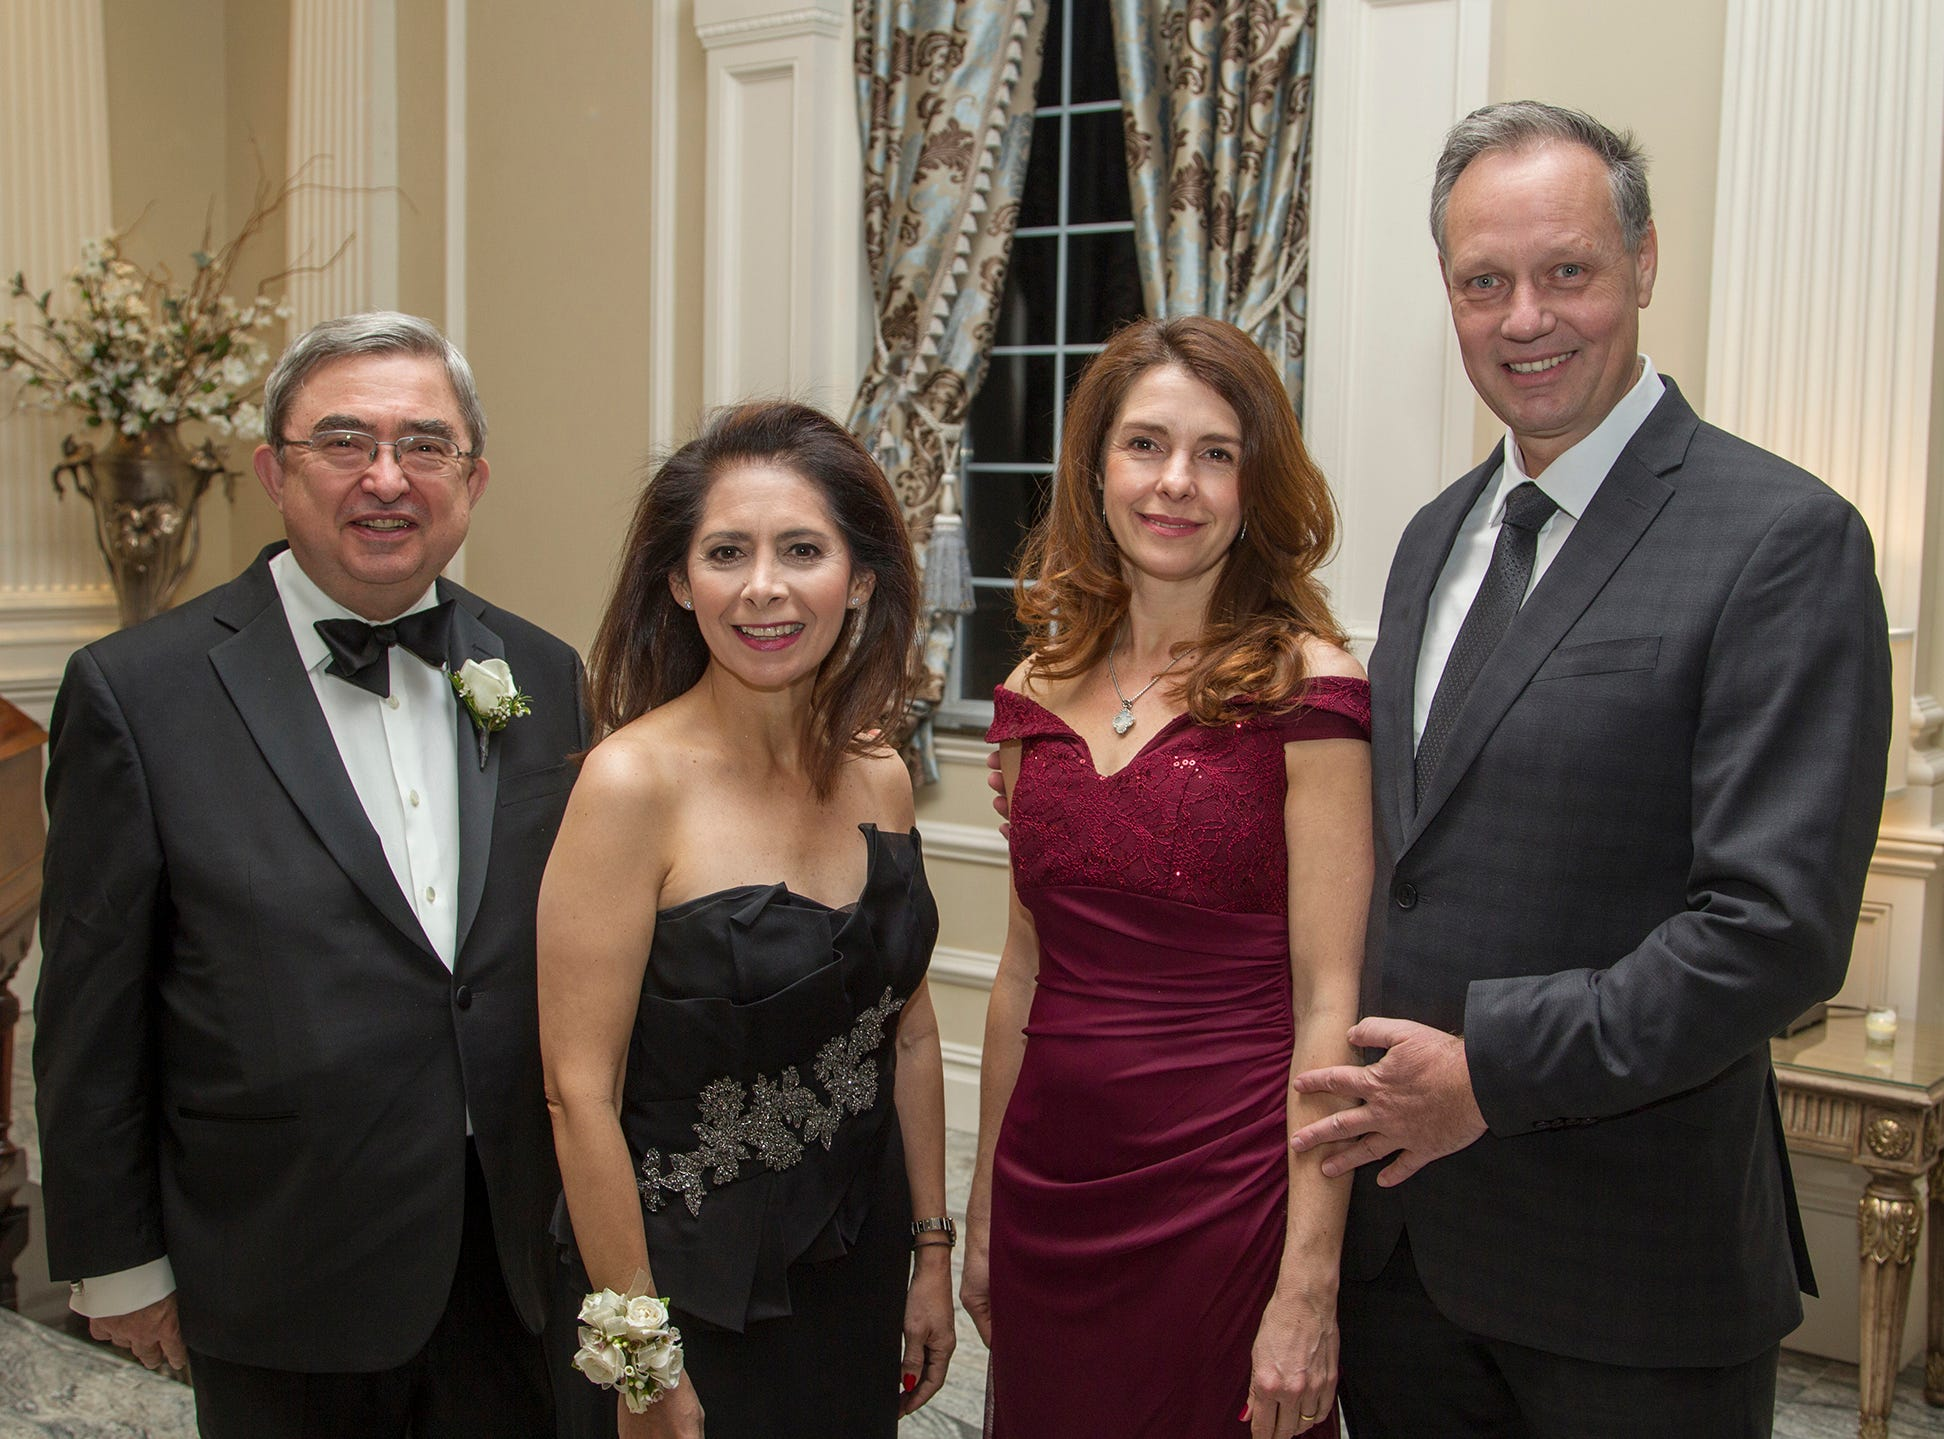 Dr.Peter Mercer, Dr. Jacqueline Ehlert-Mercer, Angela and Stefan Becker. Ramapo College held its 37th Annual Distinguished Citizens Dinner at Rockleigh Country Club. 03/02/2019